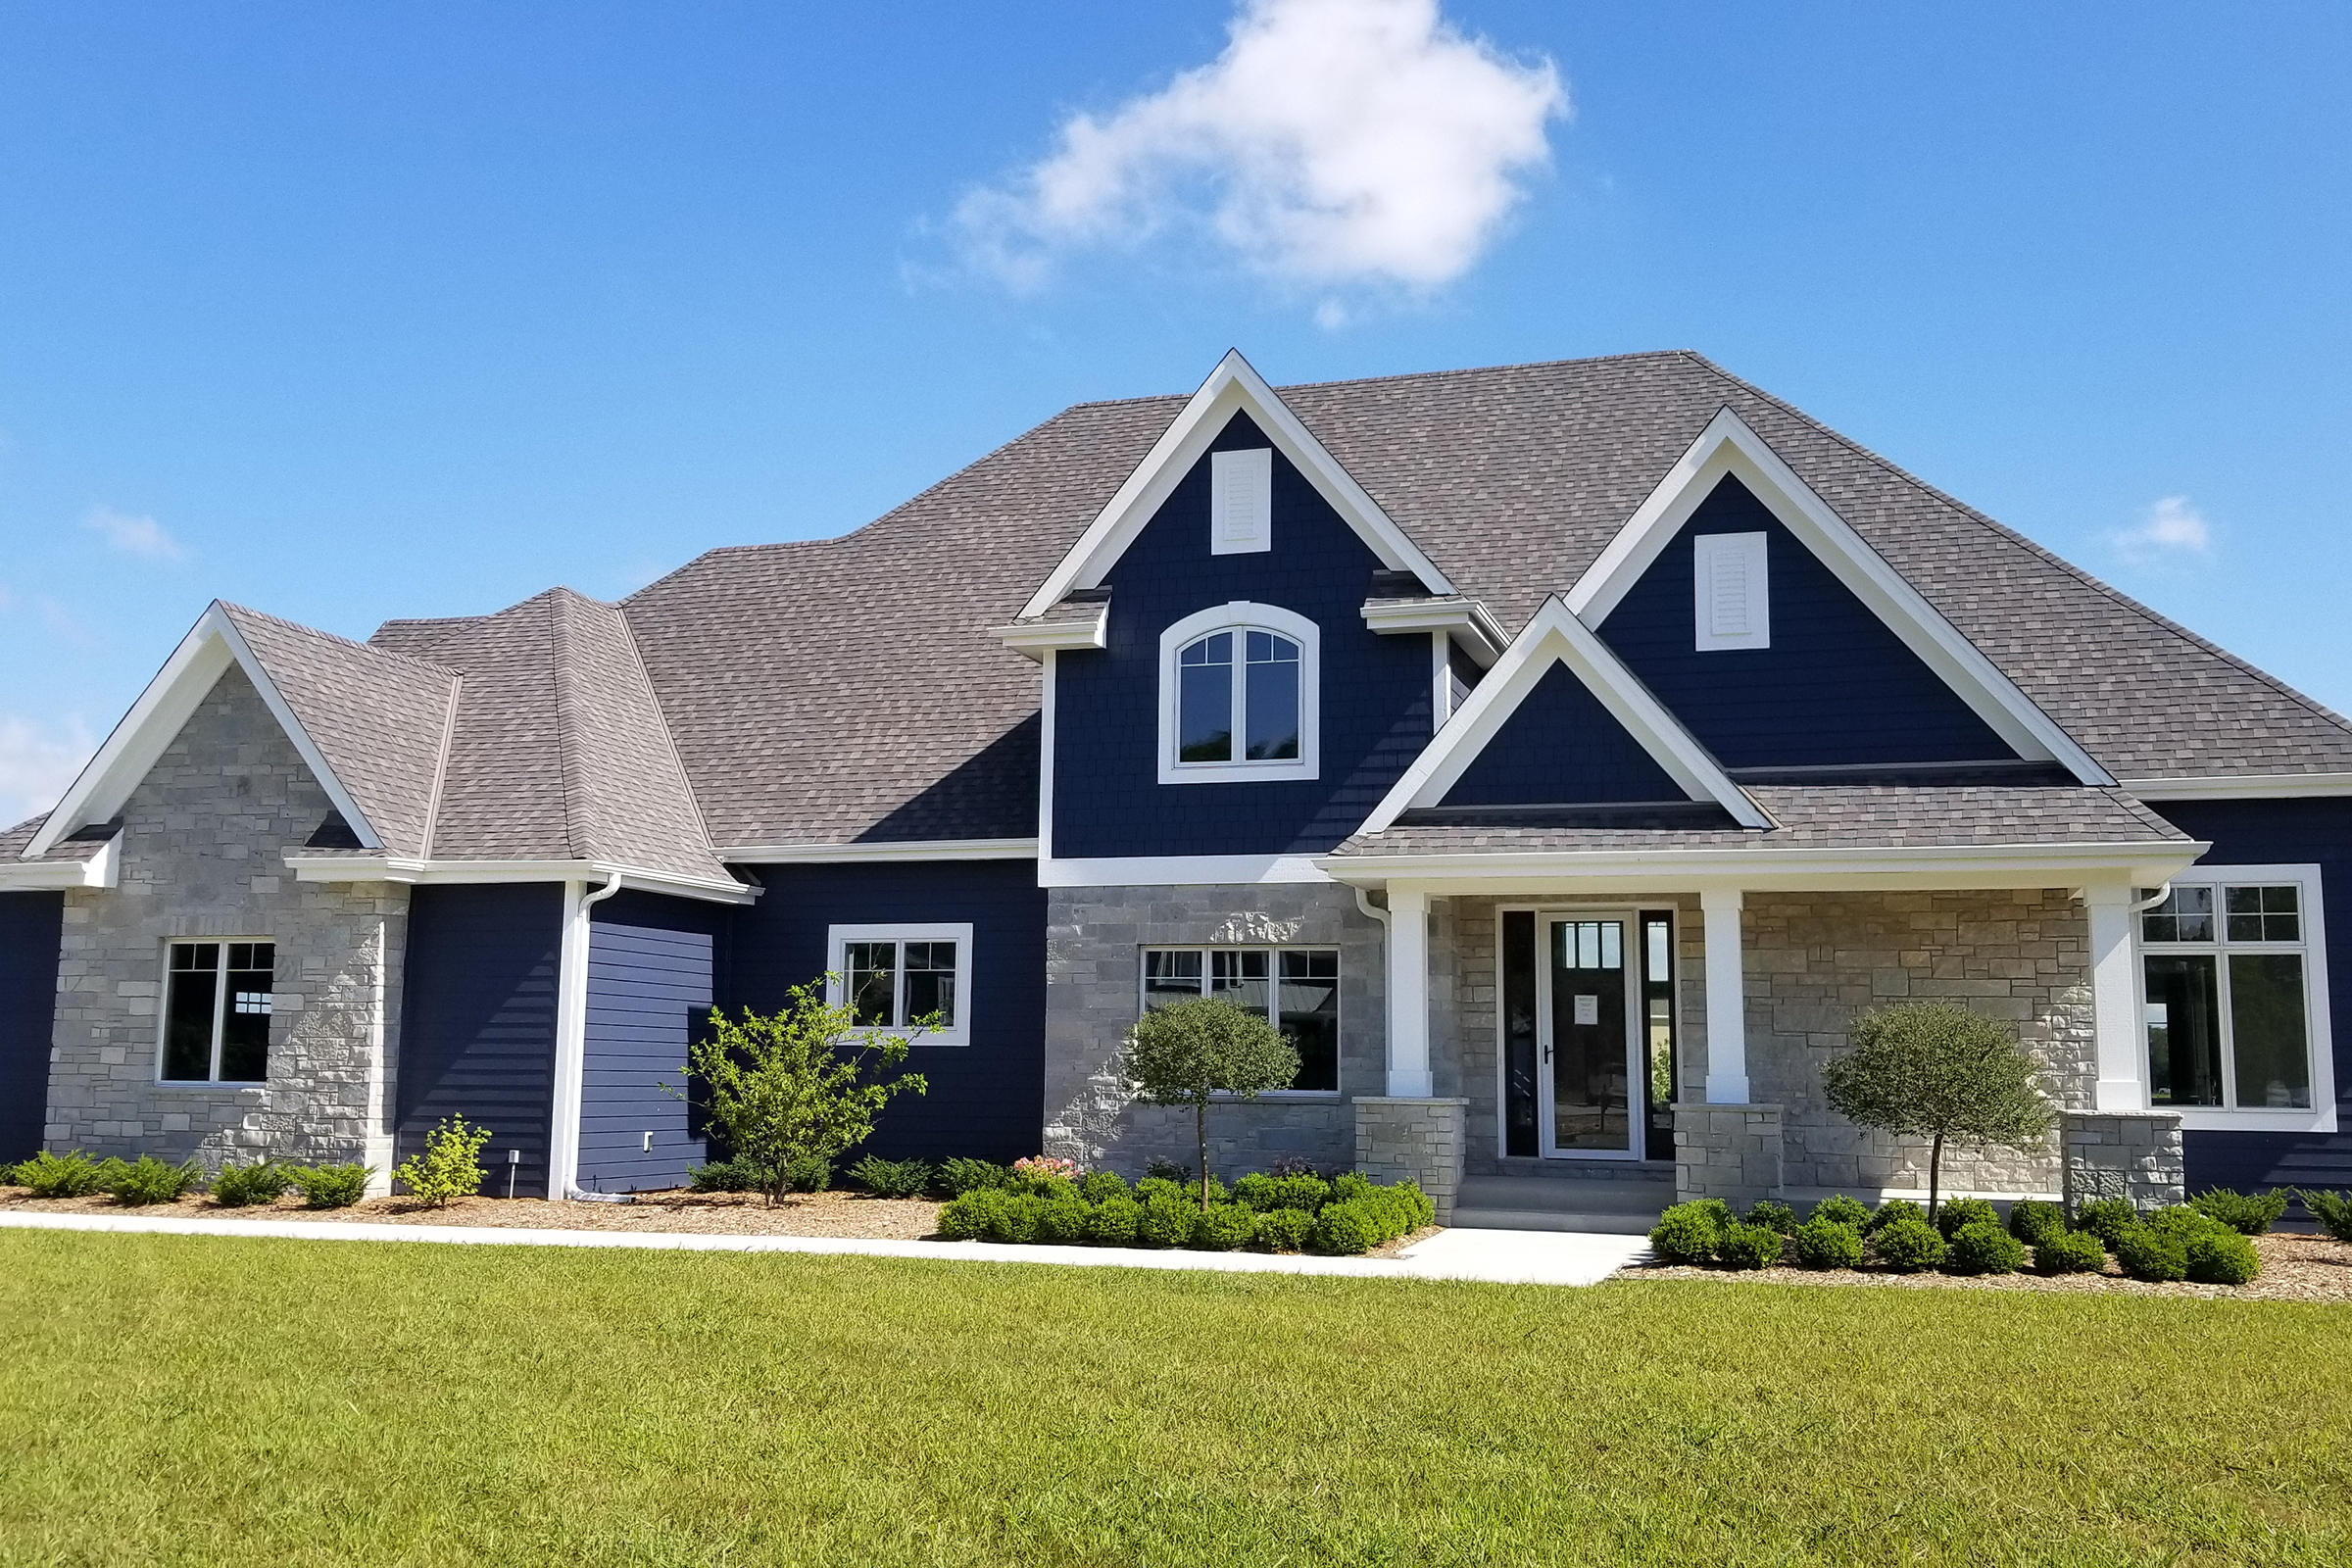 259 Four Winds Ct, Hartland, Wisconsin 53029, 6 Bedrooms Bedrooms, ,4 BathroomsBathrooms,Single-Family,For Sale,Four Winds Ct,1696627